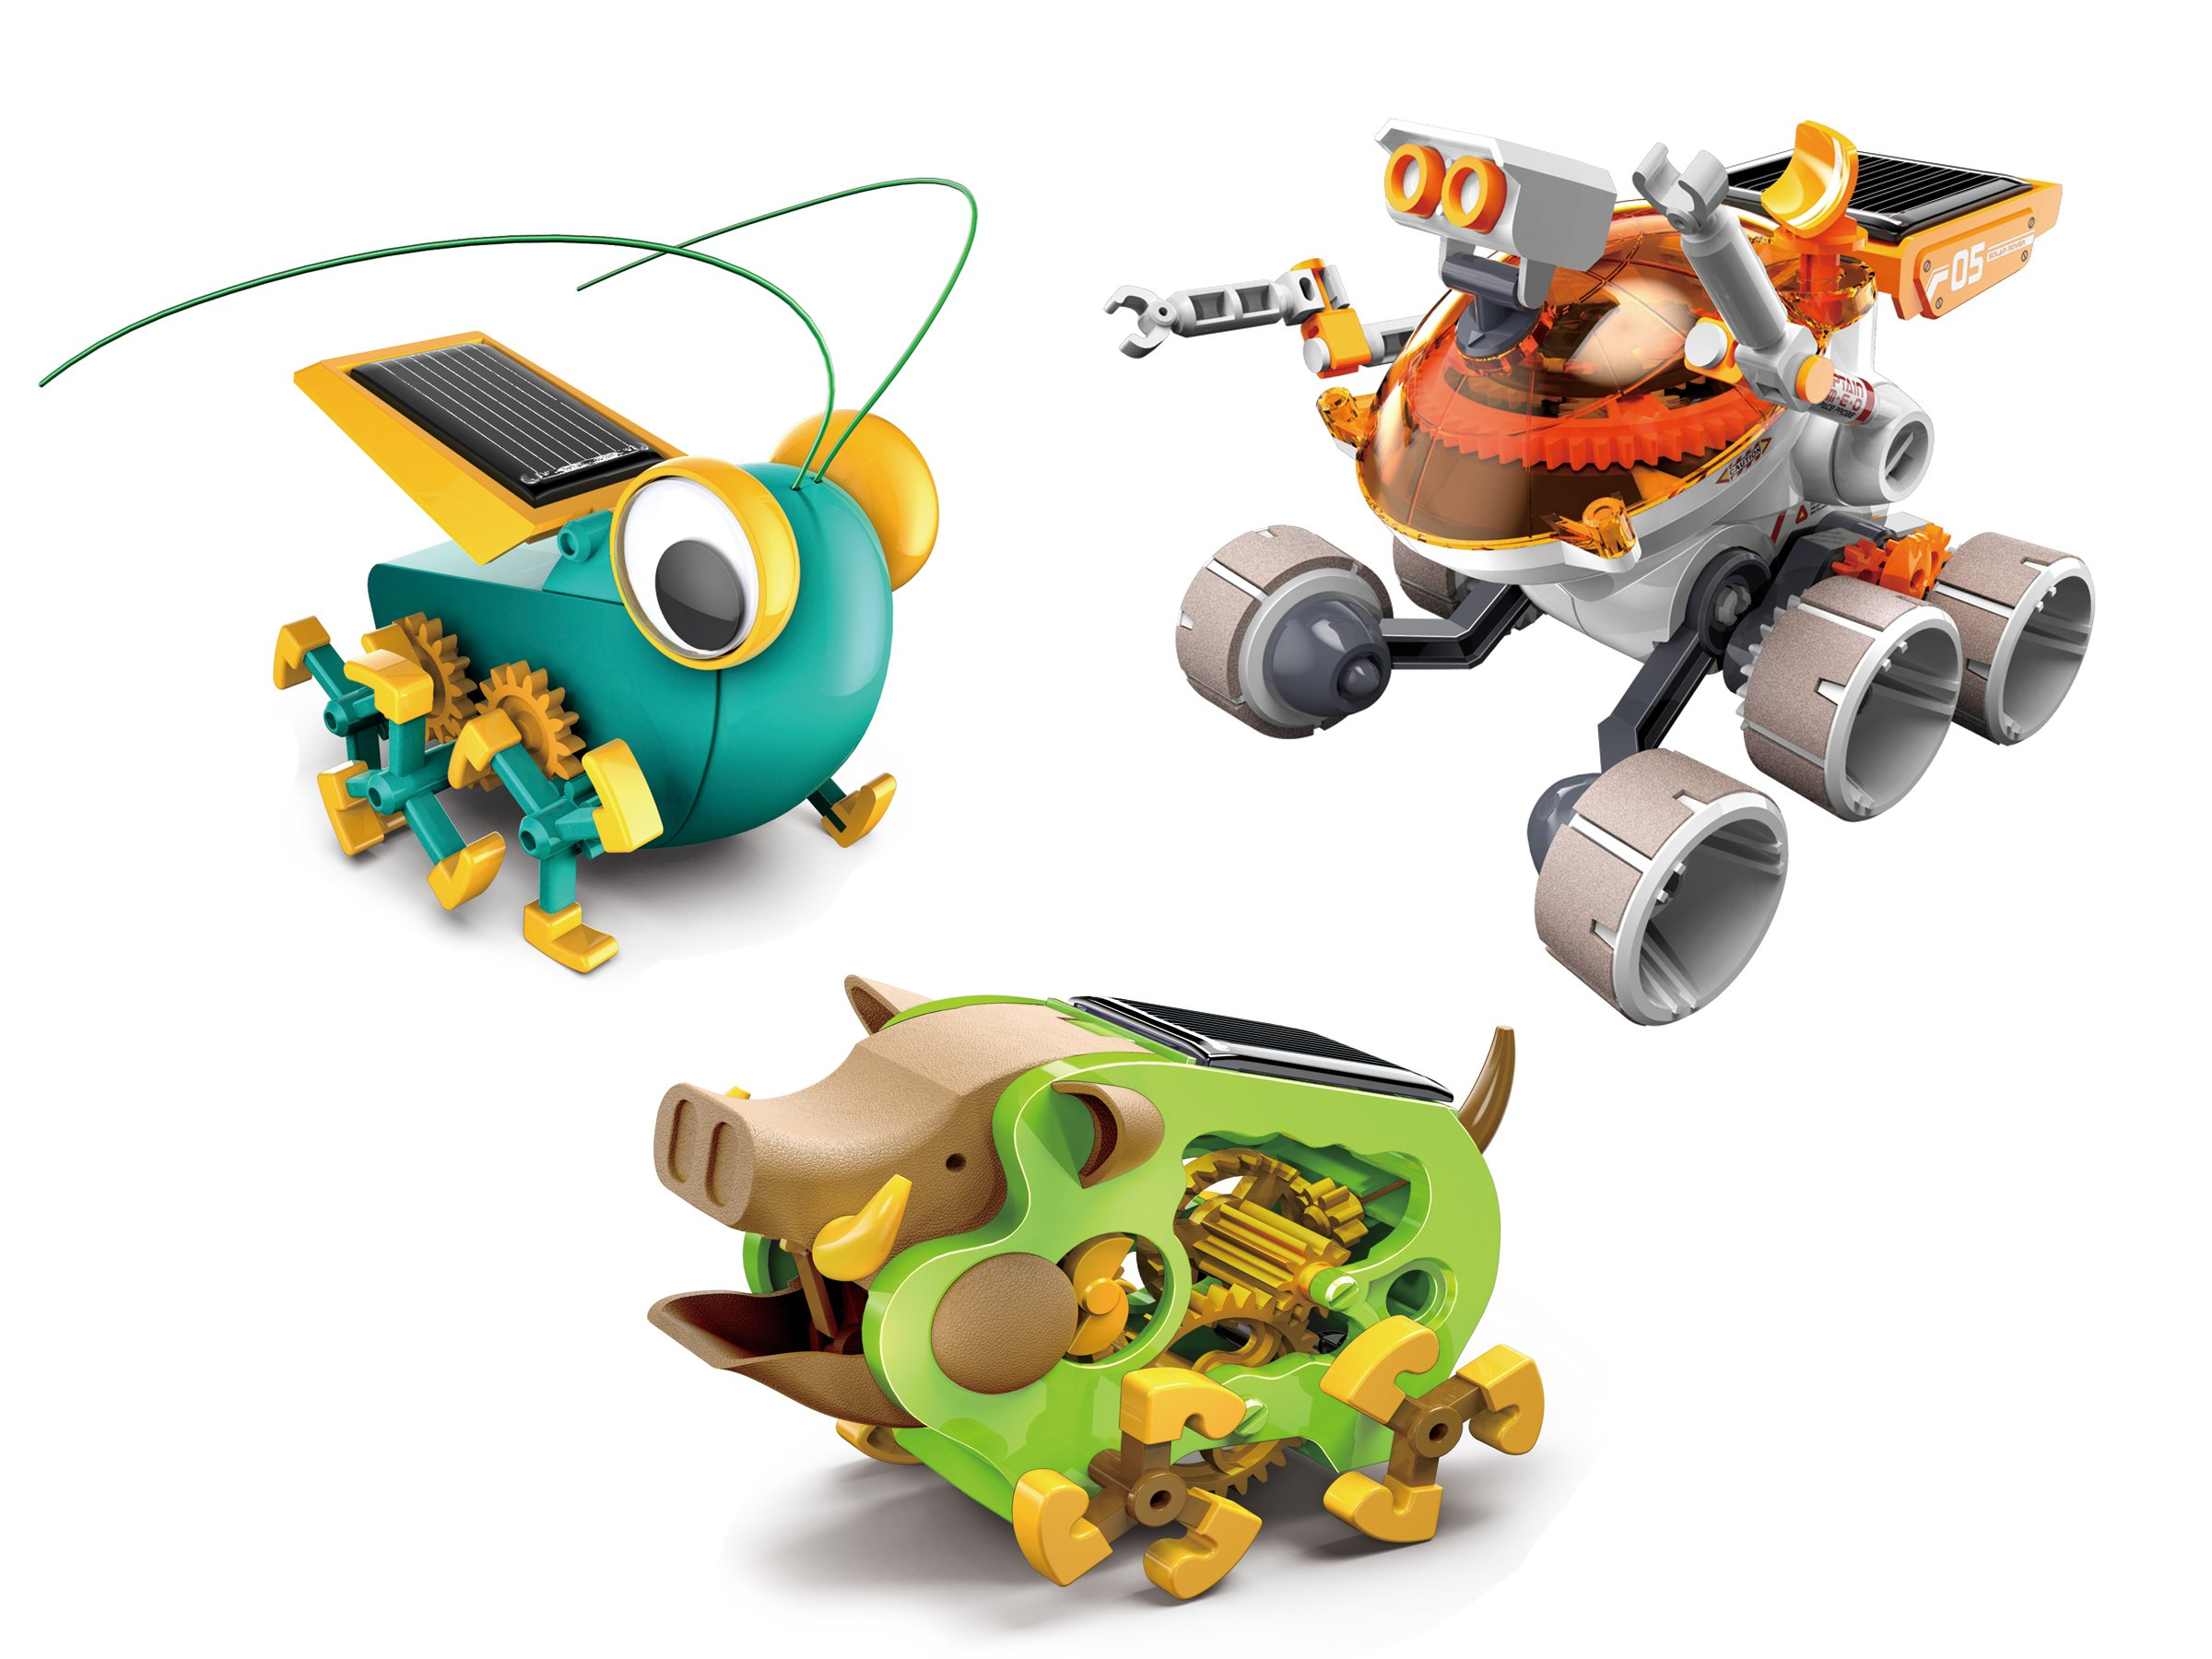 OWI Solar Robot Captain Roam-E-O, Detective Bugsee, and Wild Boar Building Model Kit